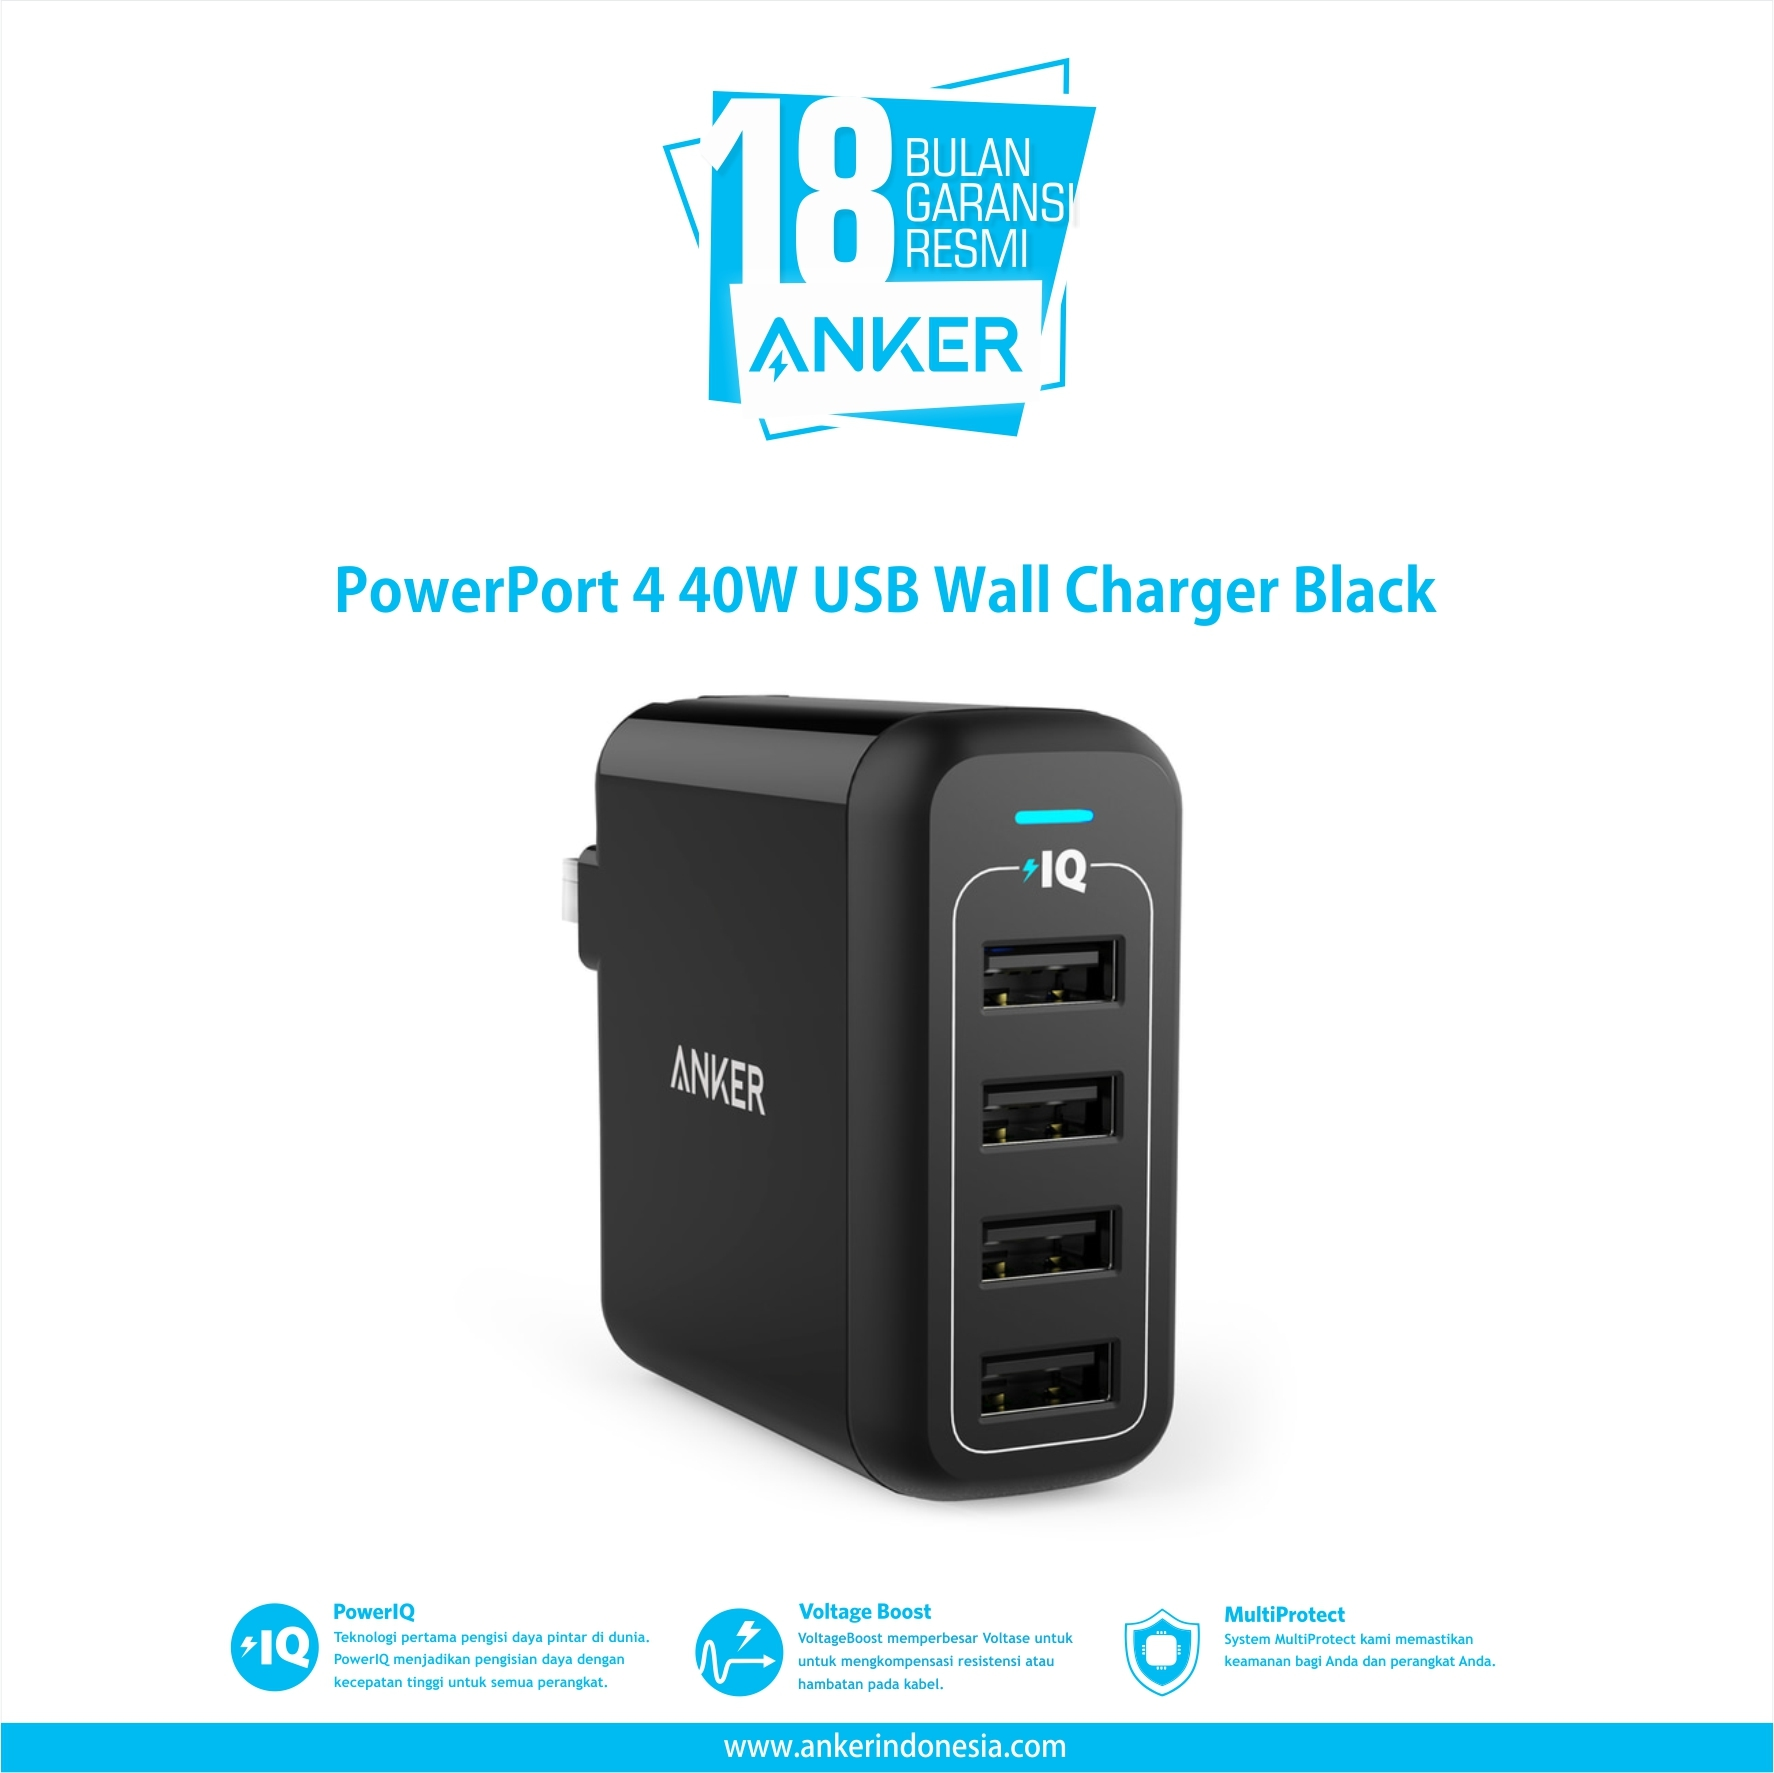 PowerPort 4 40W USB Wall Charger Black A2142J12